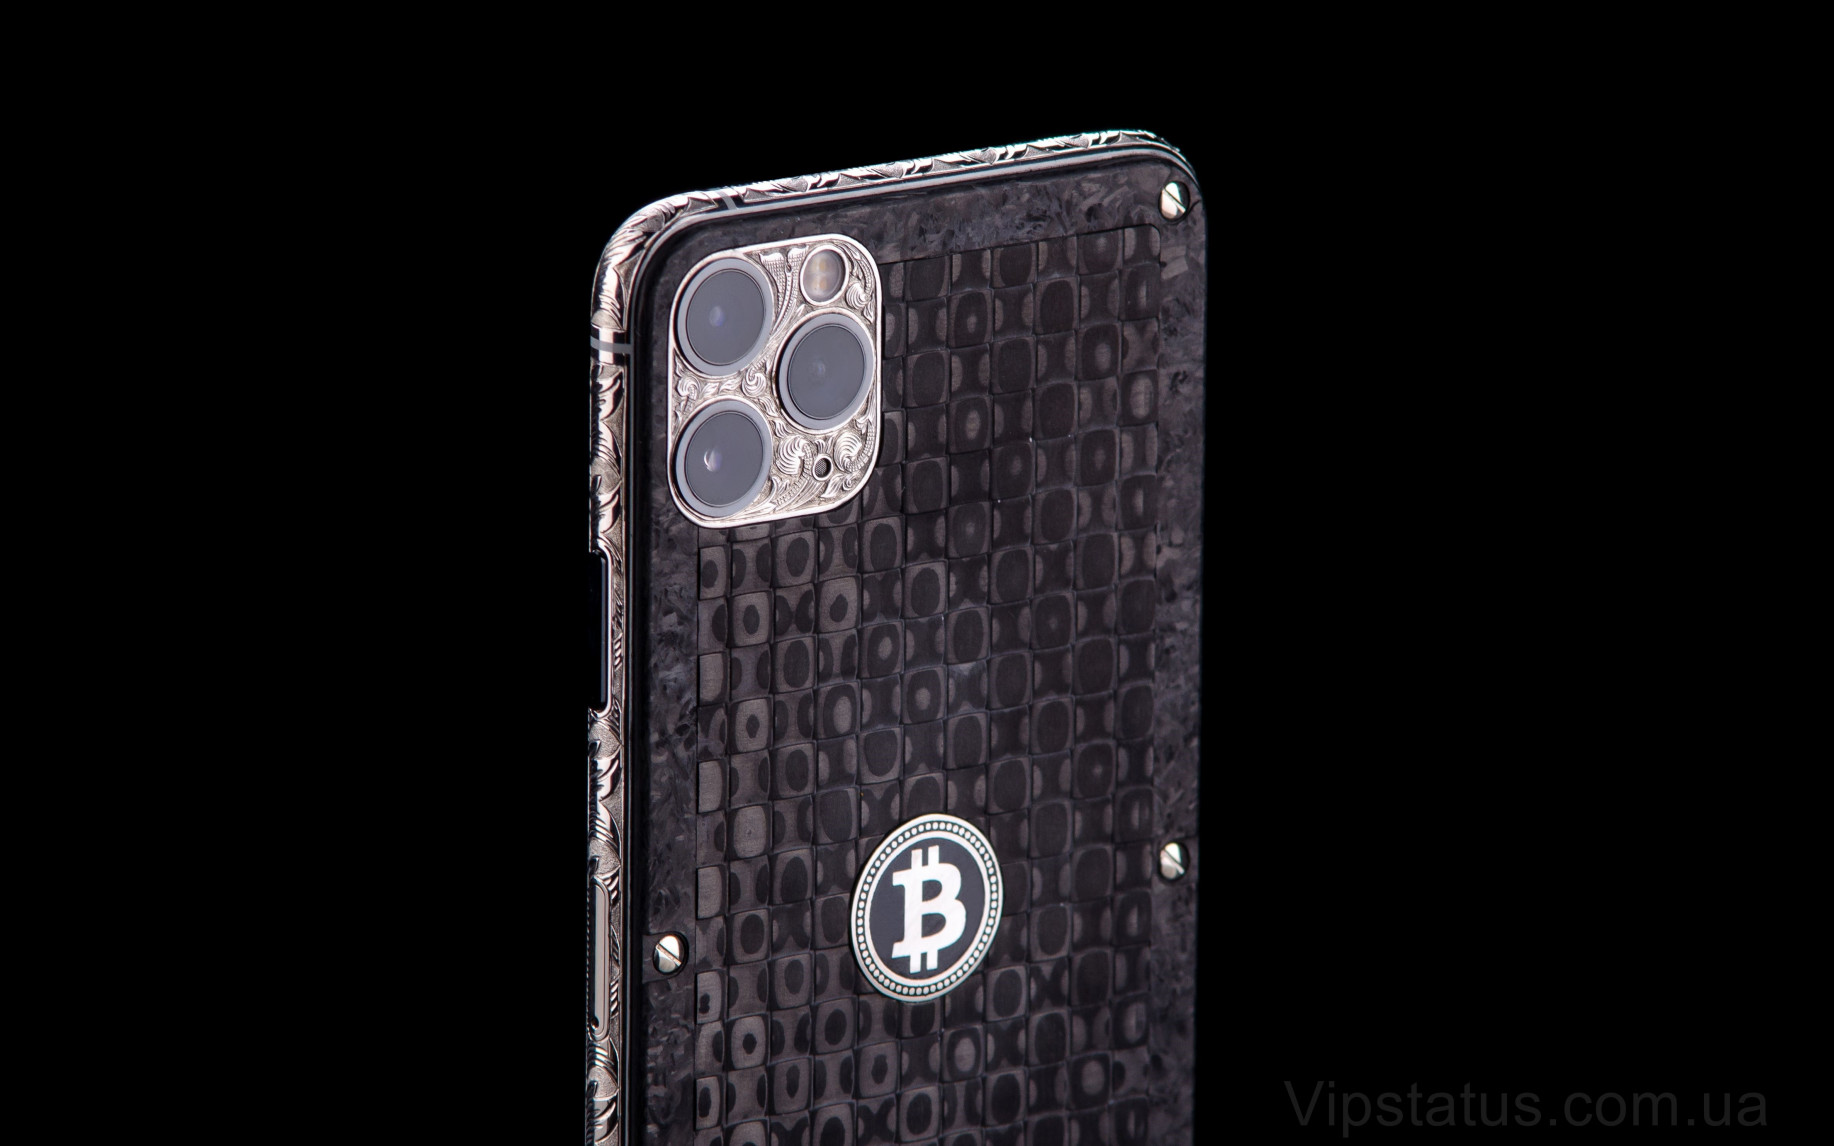 Elite Bitcoin Edition IPHONE 11 PRO 512 GB Bitcoin Edition IPHONE 11 PRO 512 GB image 2